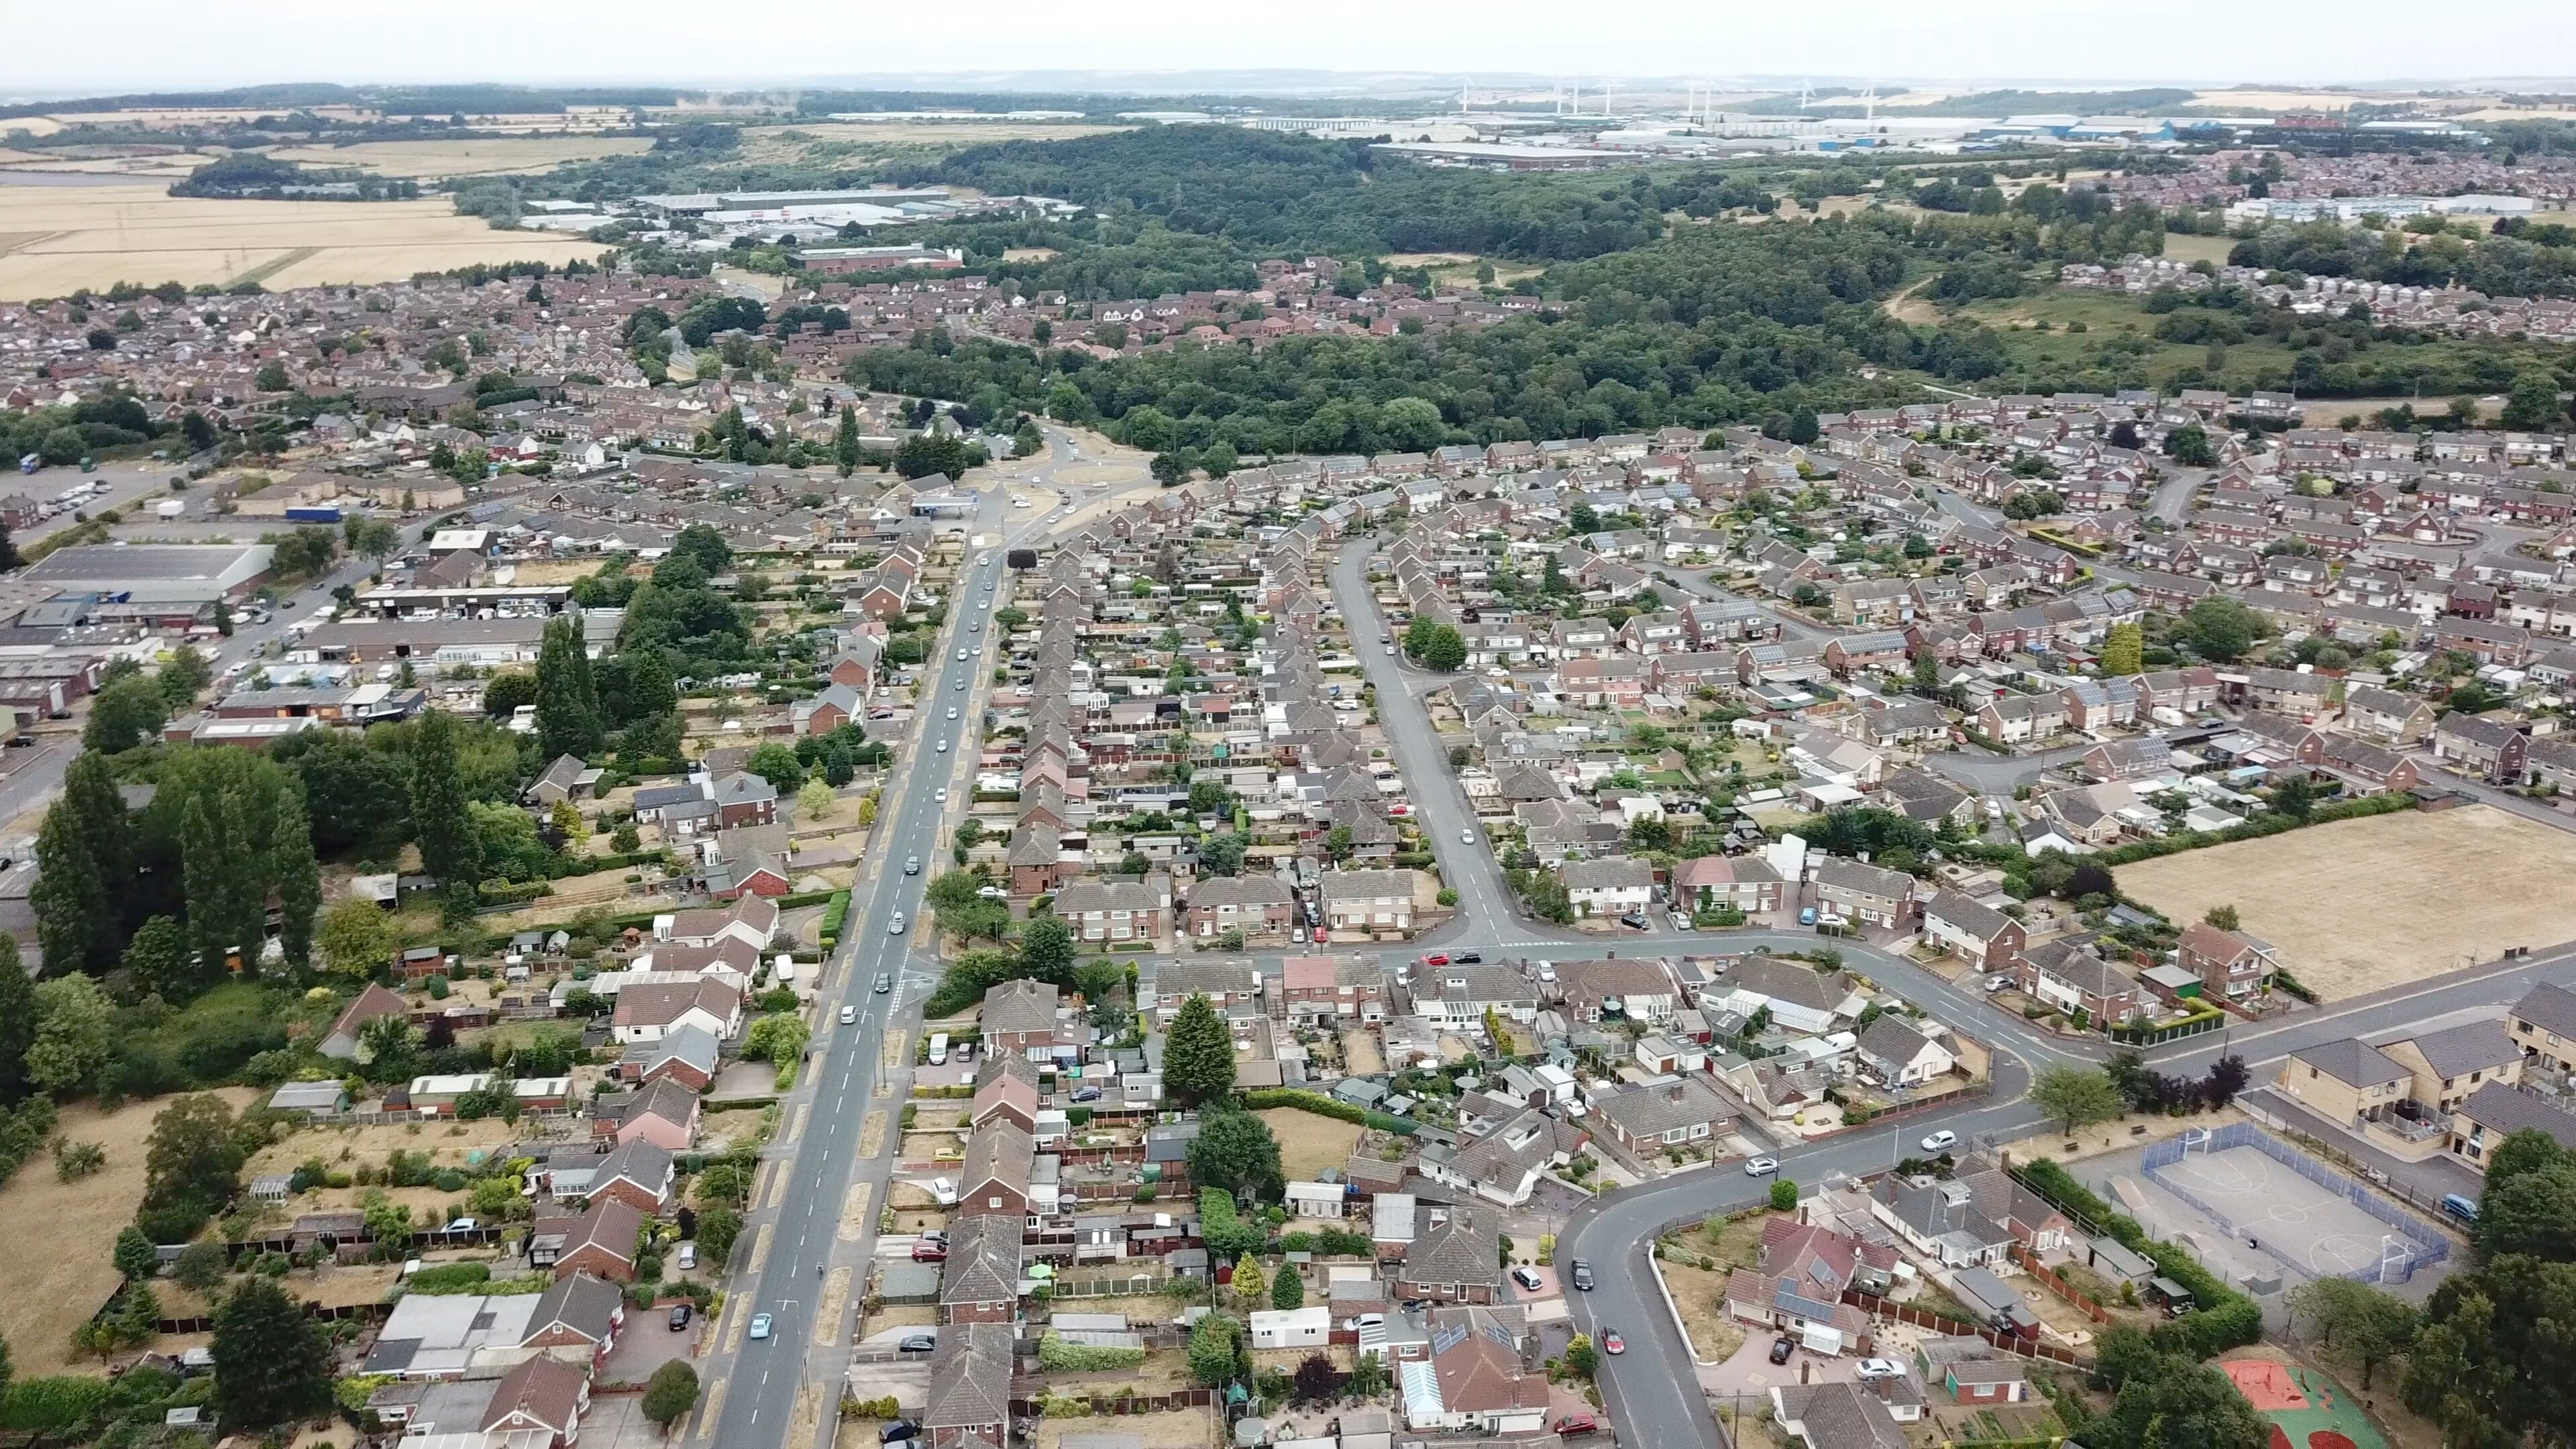 overhead view of scunthorpe during the day